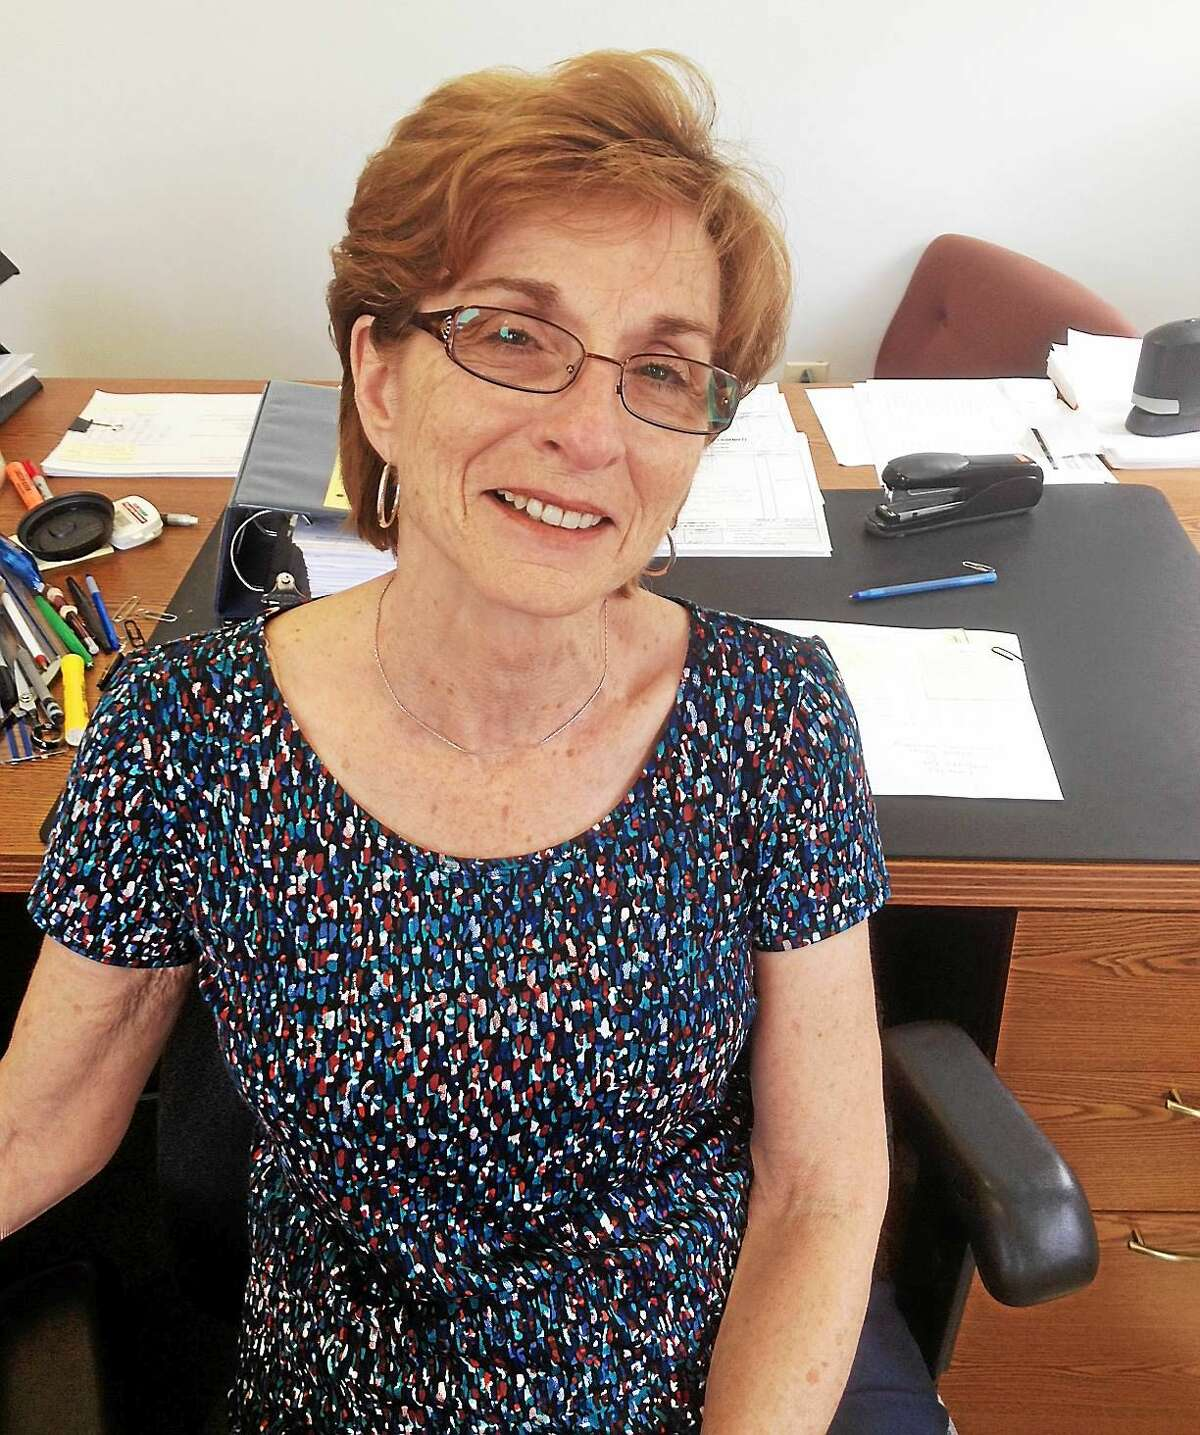 Lois DeBernardino , the assistant accountant at Cromwell Town Hall for the past 38 years says work has been her passion. Her retirement will allow her to spend more time with her three grandchildren.